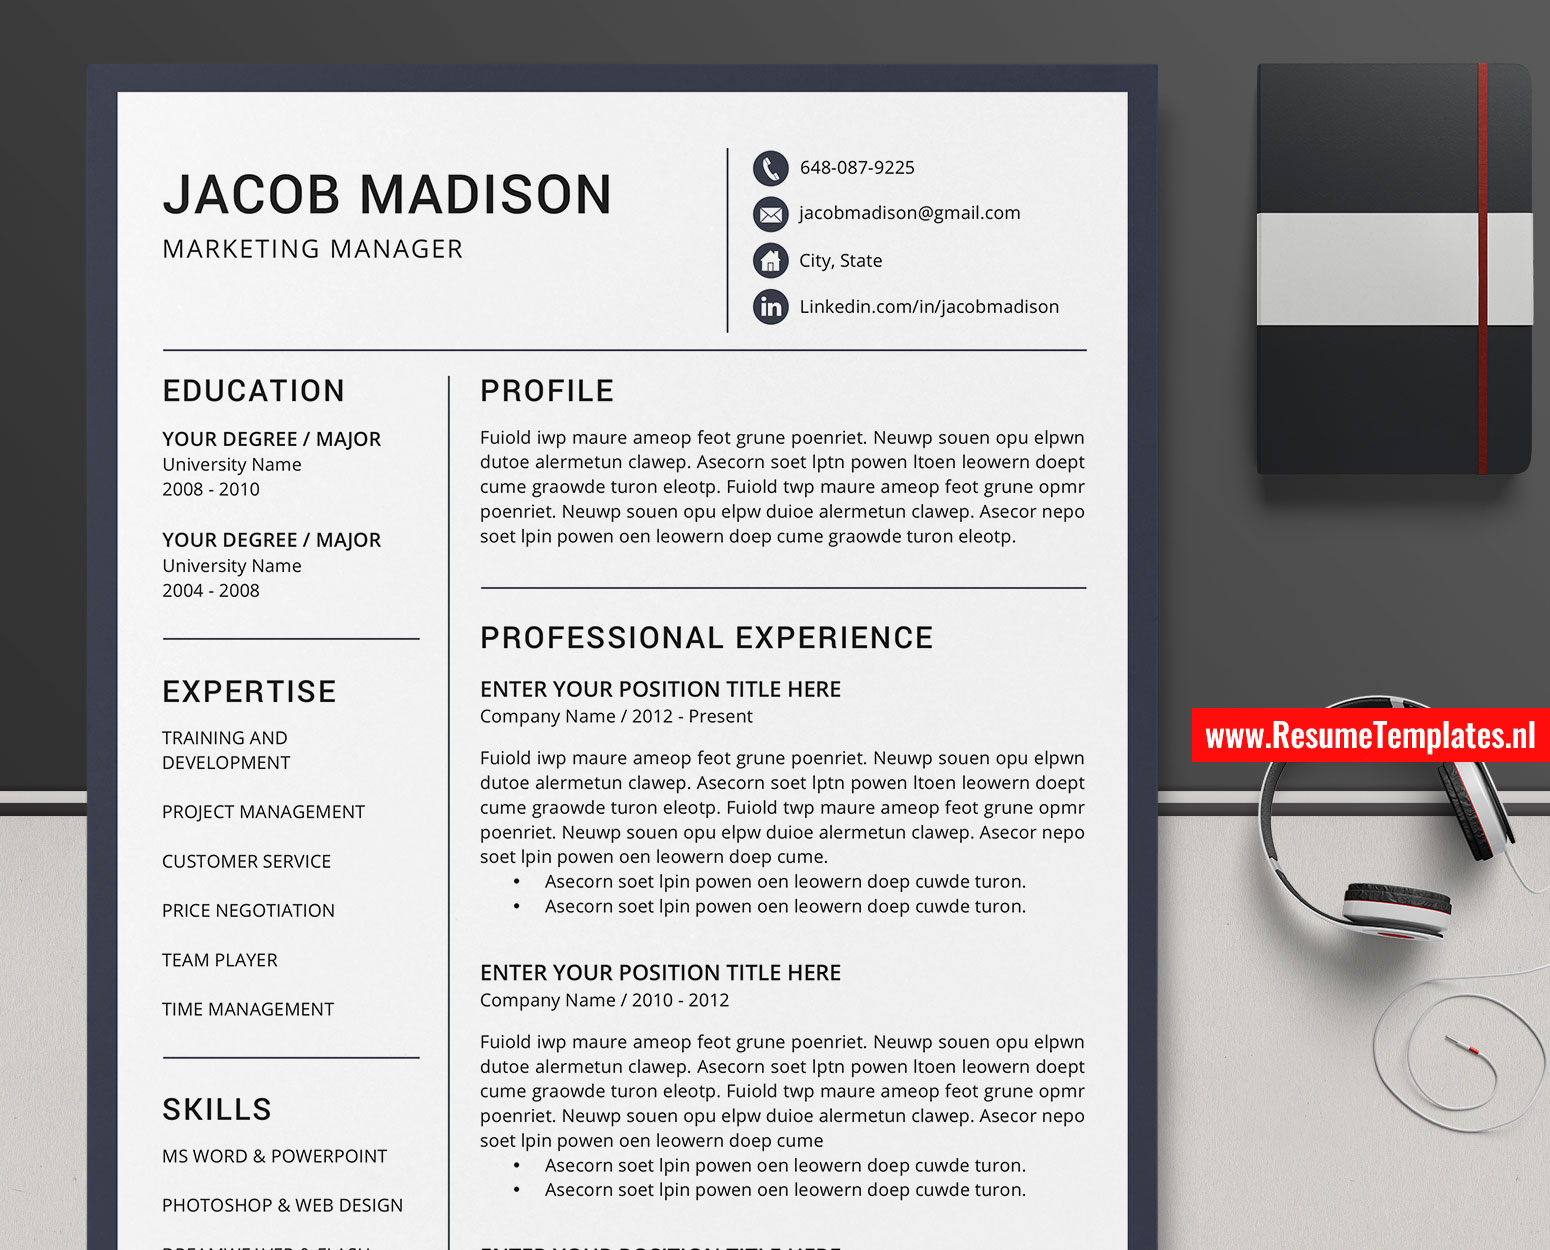 Microsoft Word Job Application Template from www.resumetemplates.nl